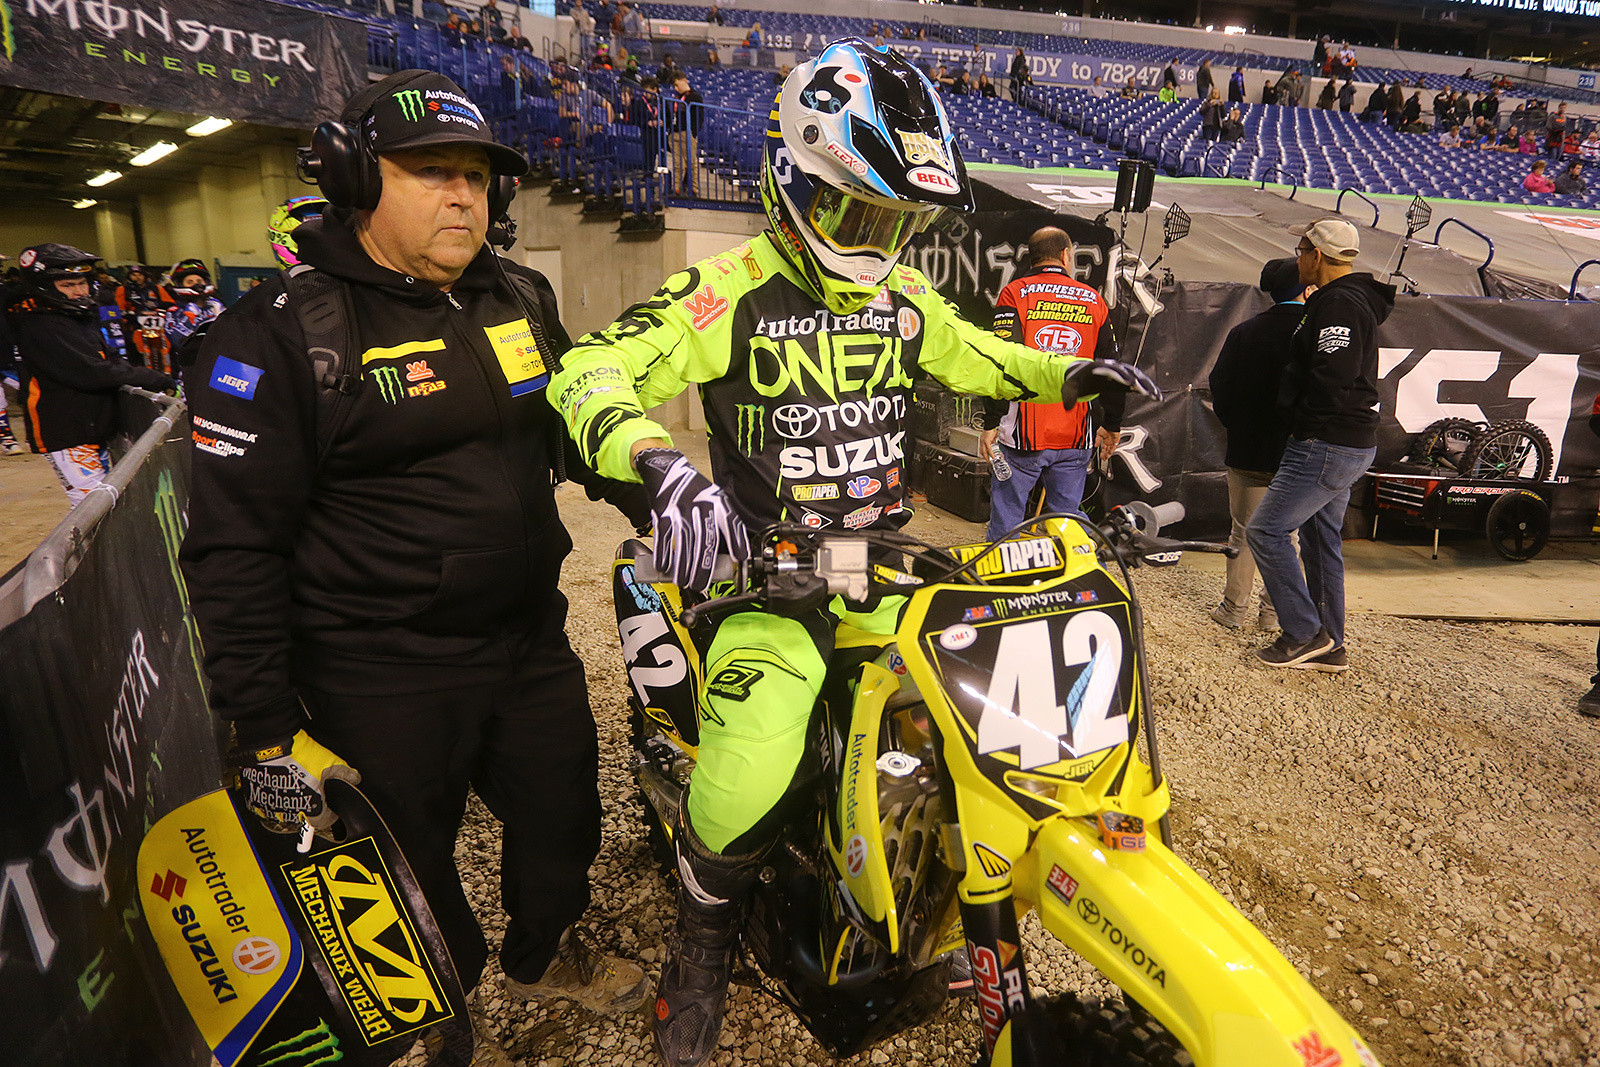 Kyle Cunningham and Lee McCollum - Vital MX Pit Bits: Indianapolis - Motocross Pictures - Vital MX